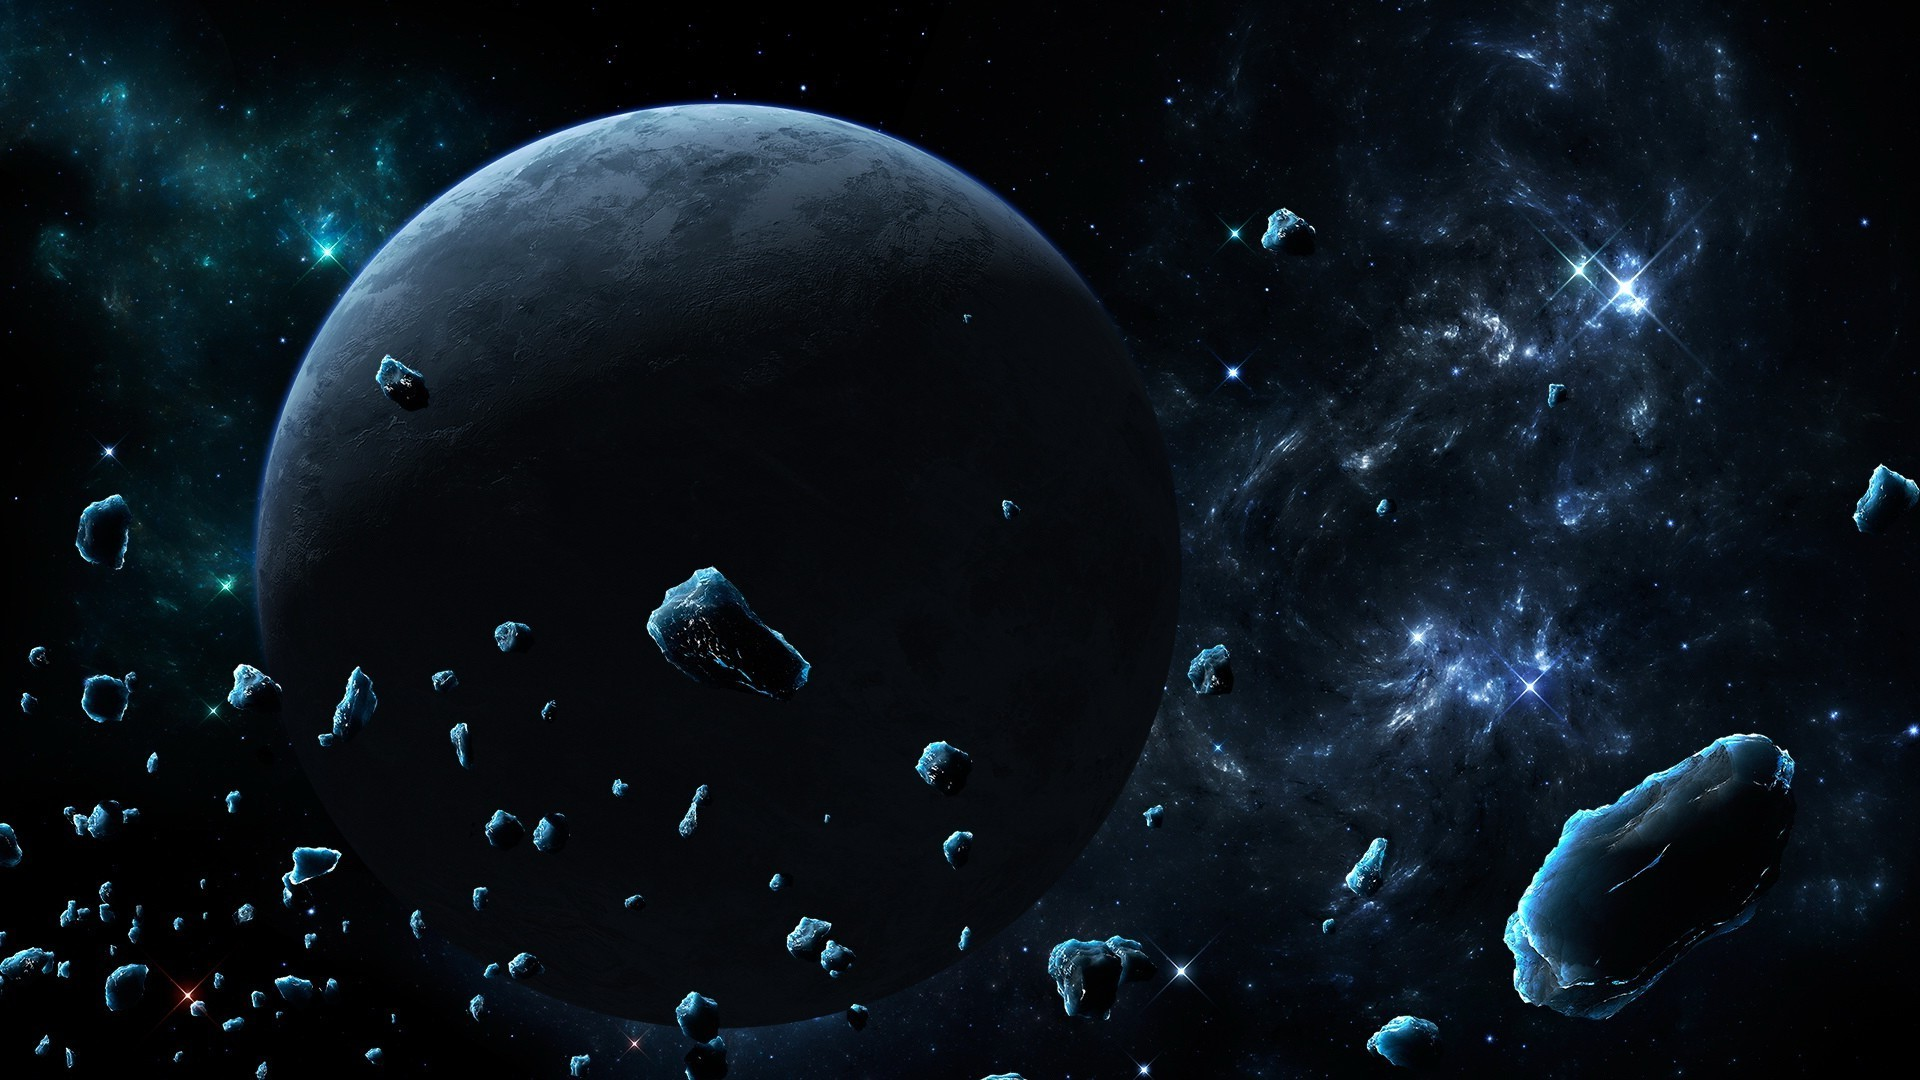 1920x1080 - Asteroid Wallpapers 21